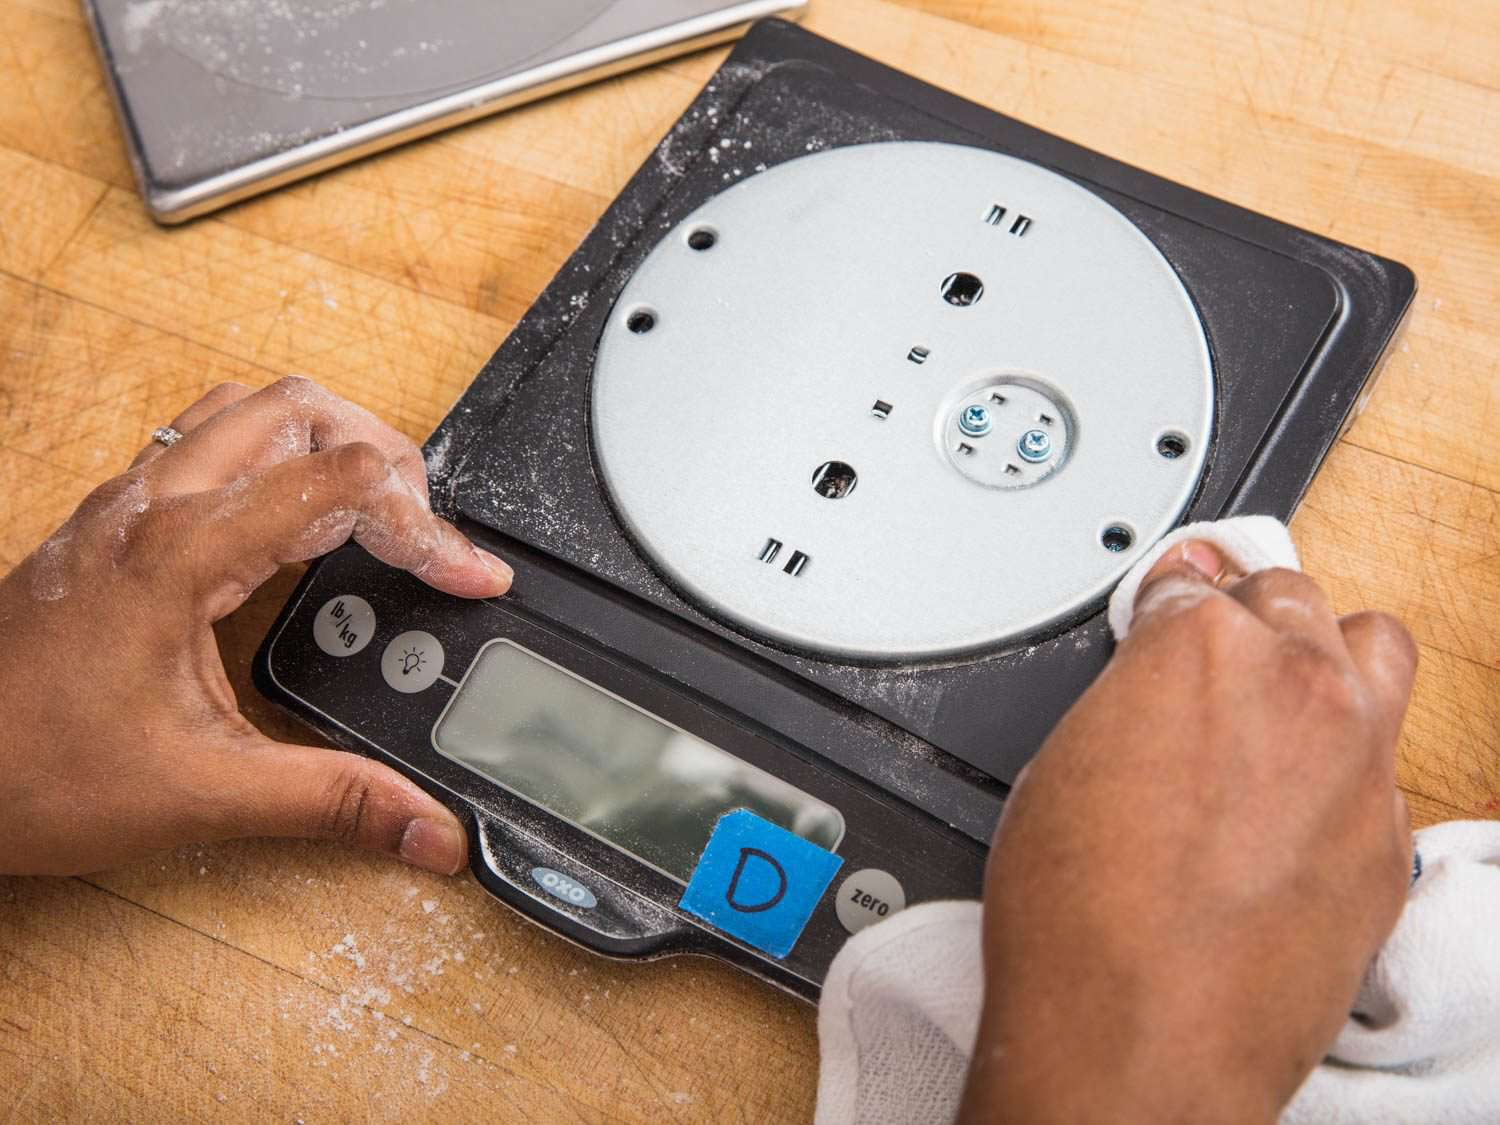 Cleaning the inside of a digital kitchen scale.